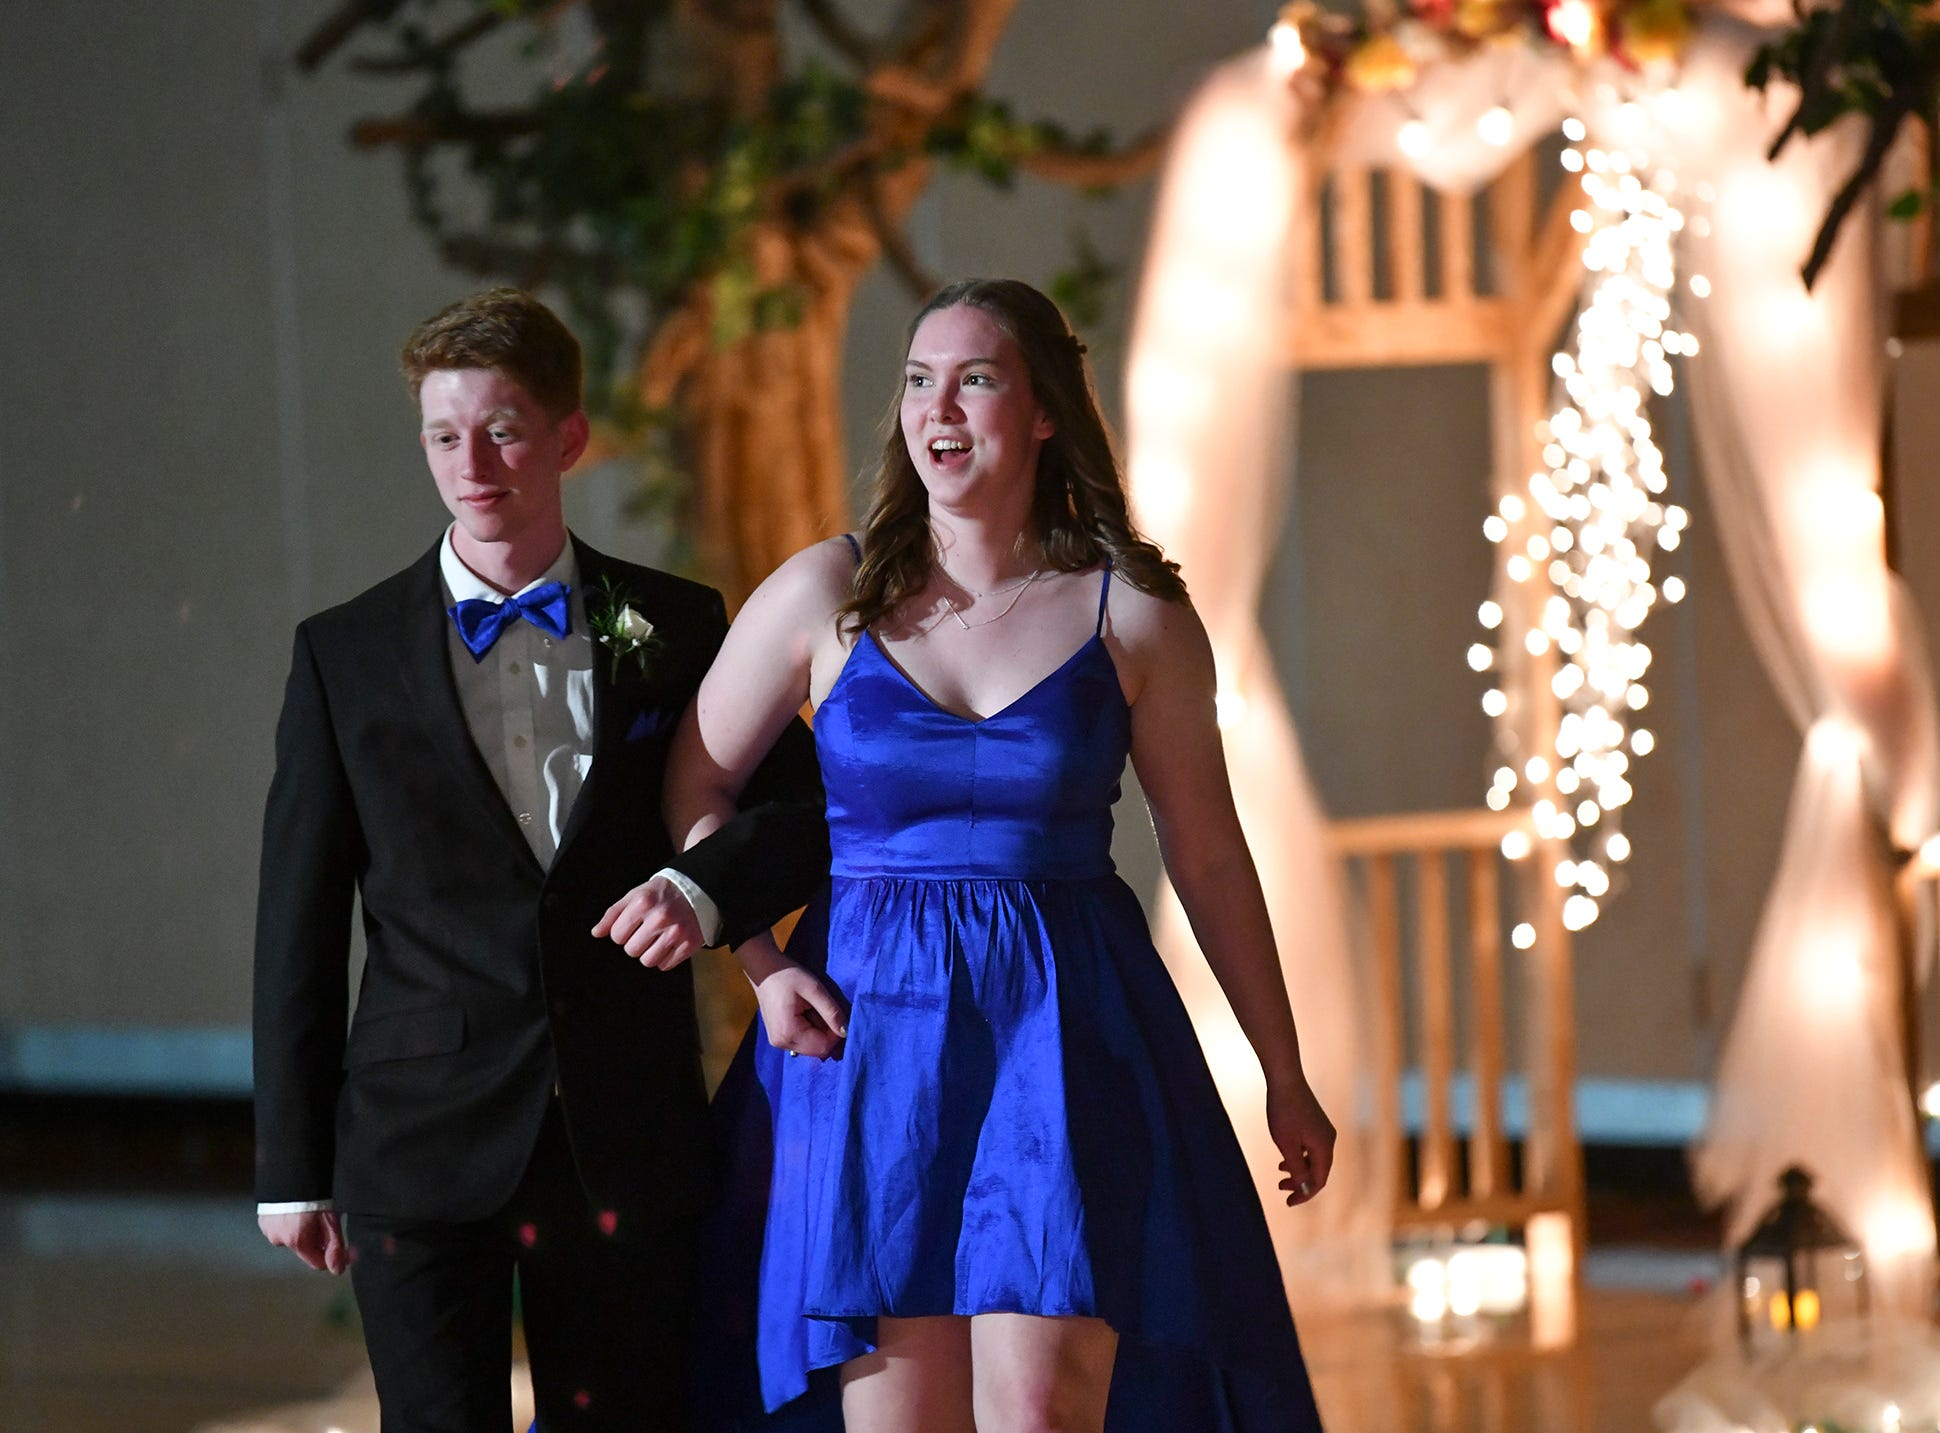 Couples smile during prom grand march Saturday, April 27, at Tech High School in St. Cloud.